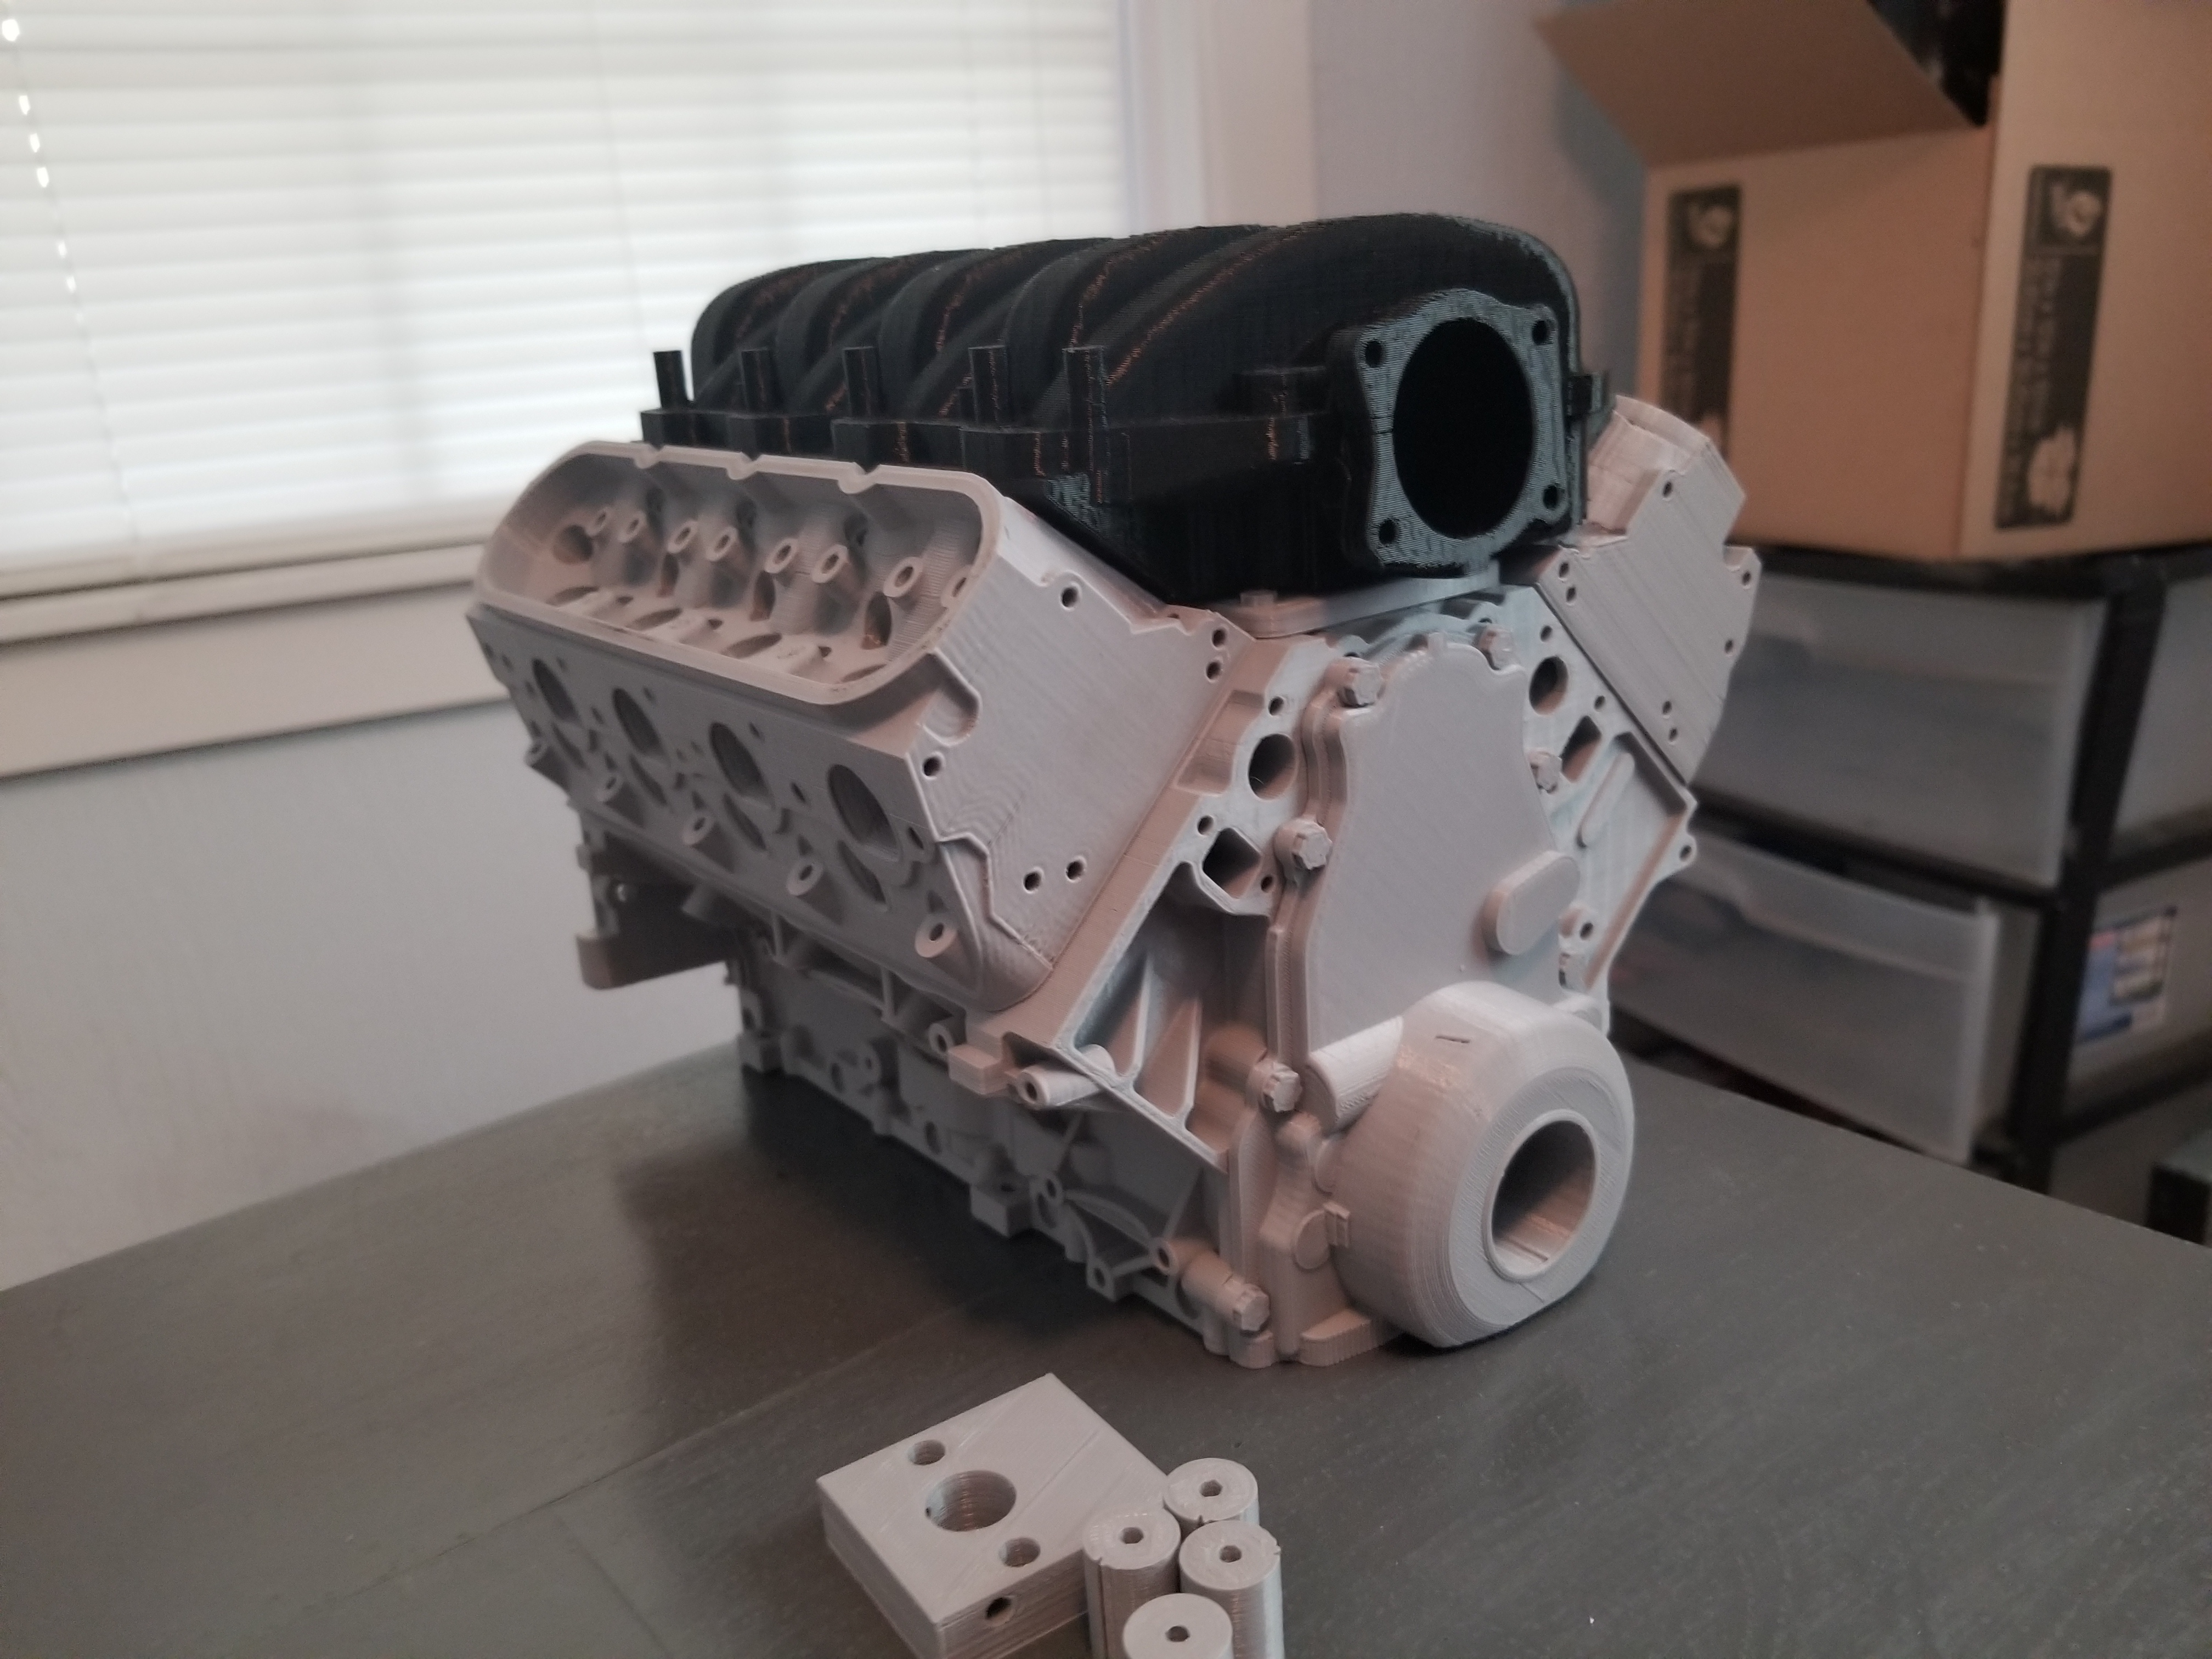 chevy camaro ls3 v8 engine scale working model by trueblueoval rh thingiverse com